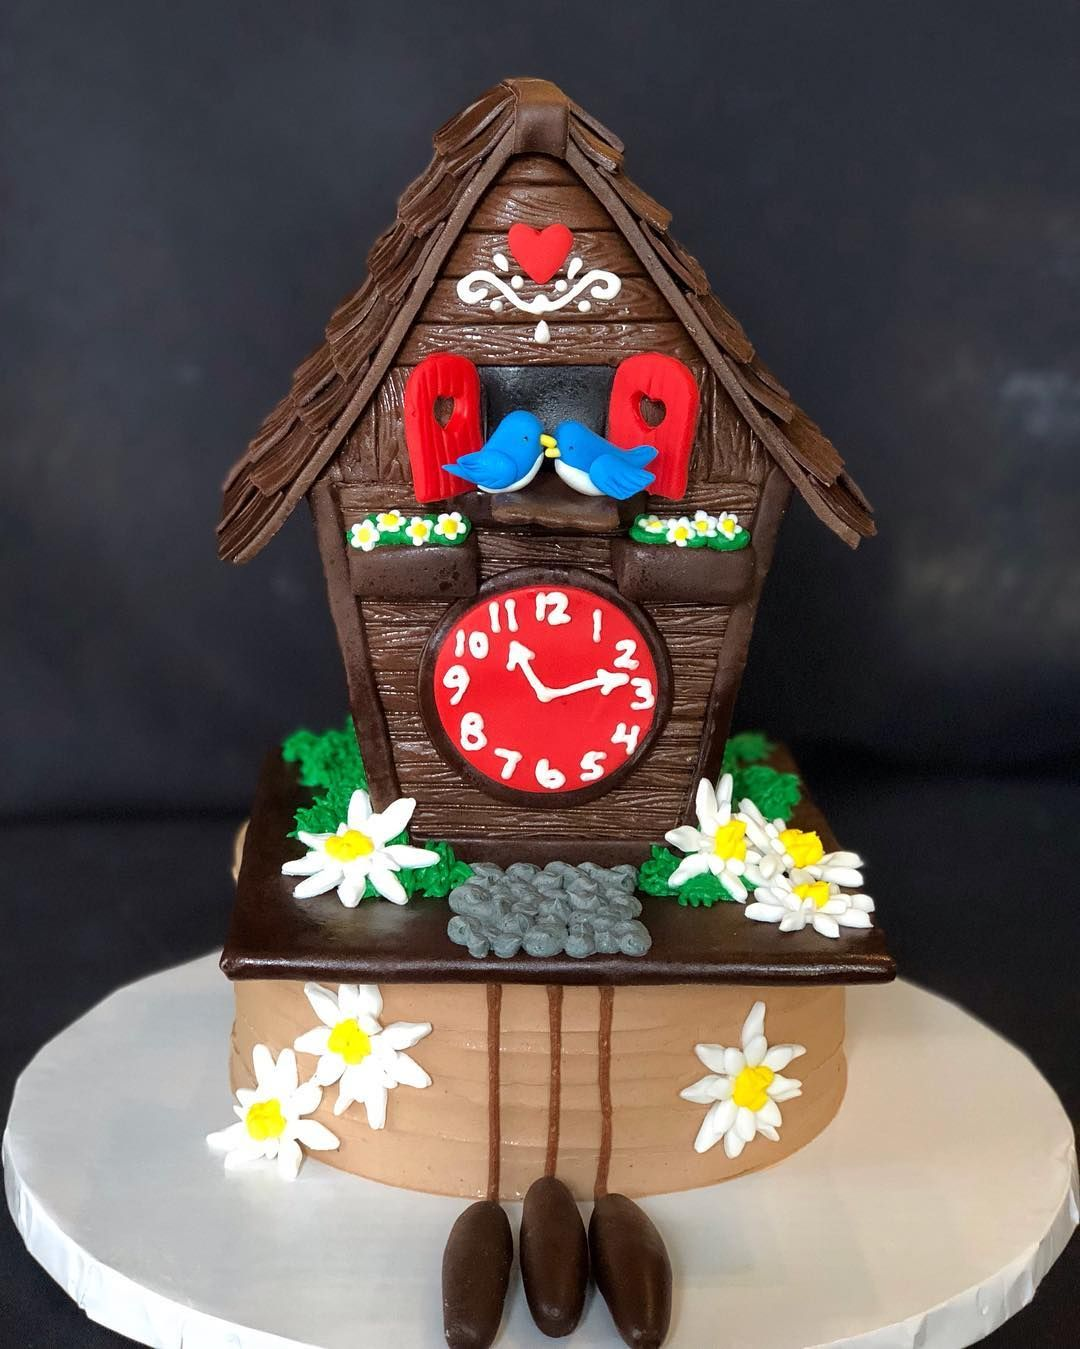 Short North Piece Of Cake On Instagram Check Out This Amazing Coo Coo Clock Cake Custom Made By Megan For Novelty Birthday Cakes Tardis Cake Piece Of Cakes